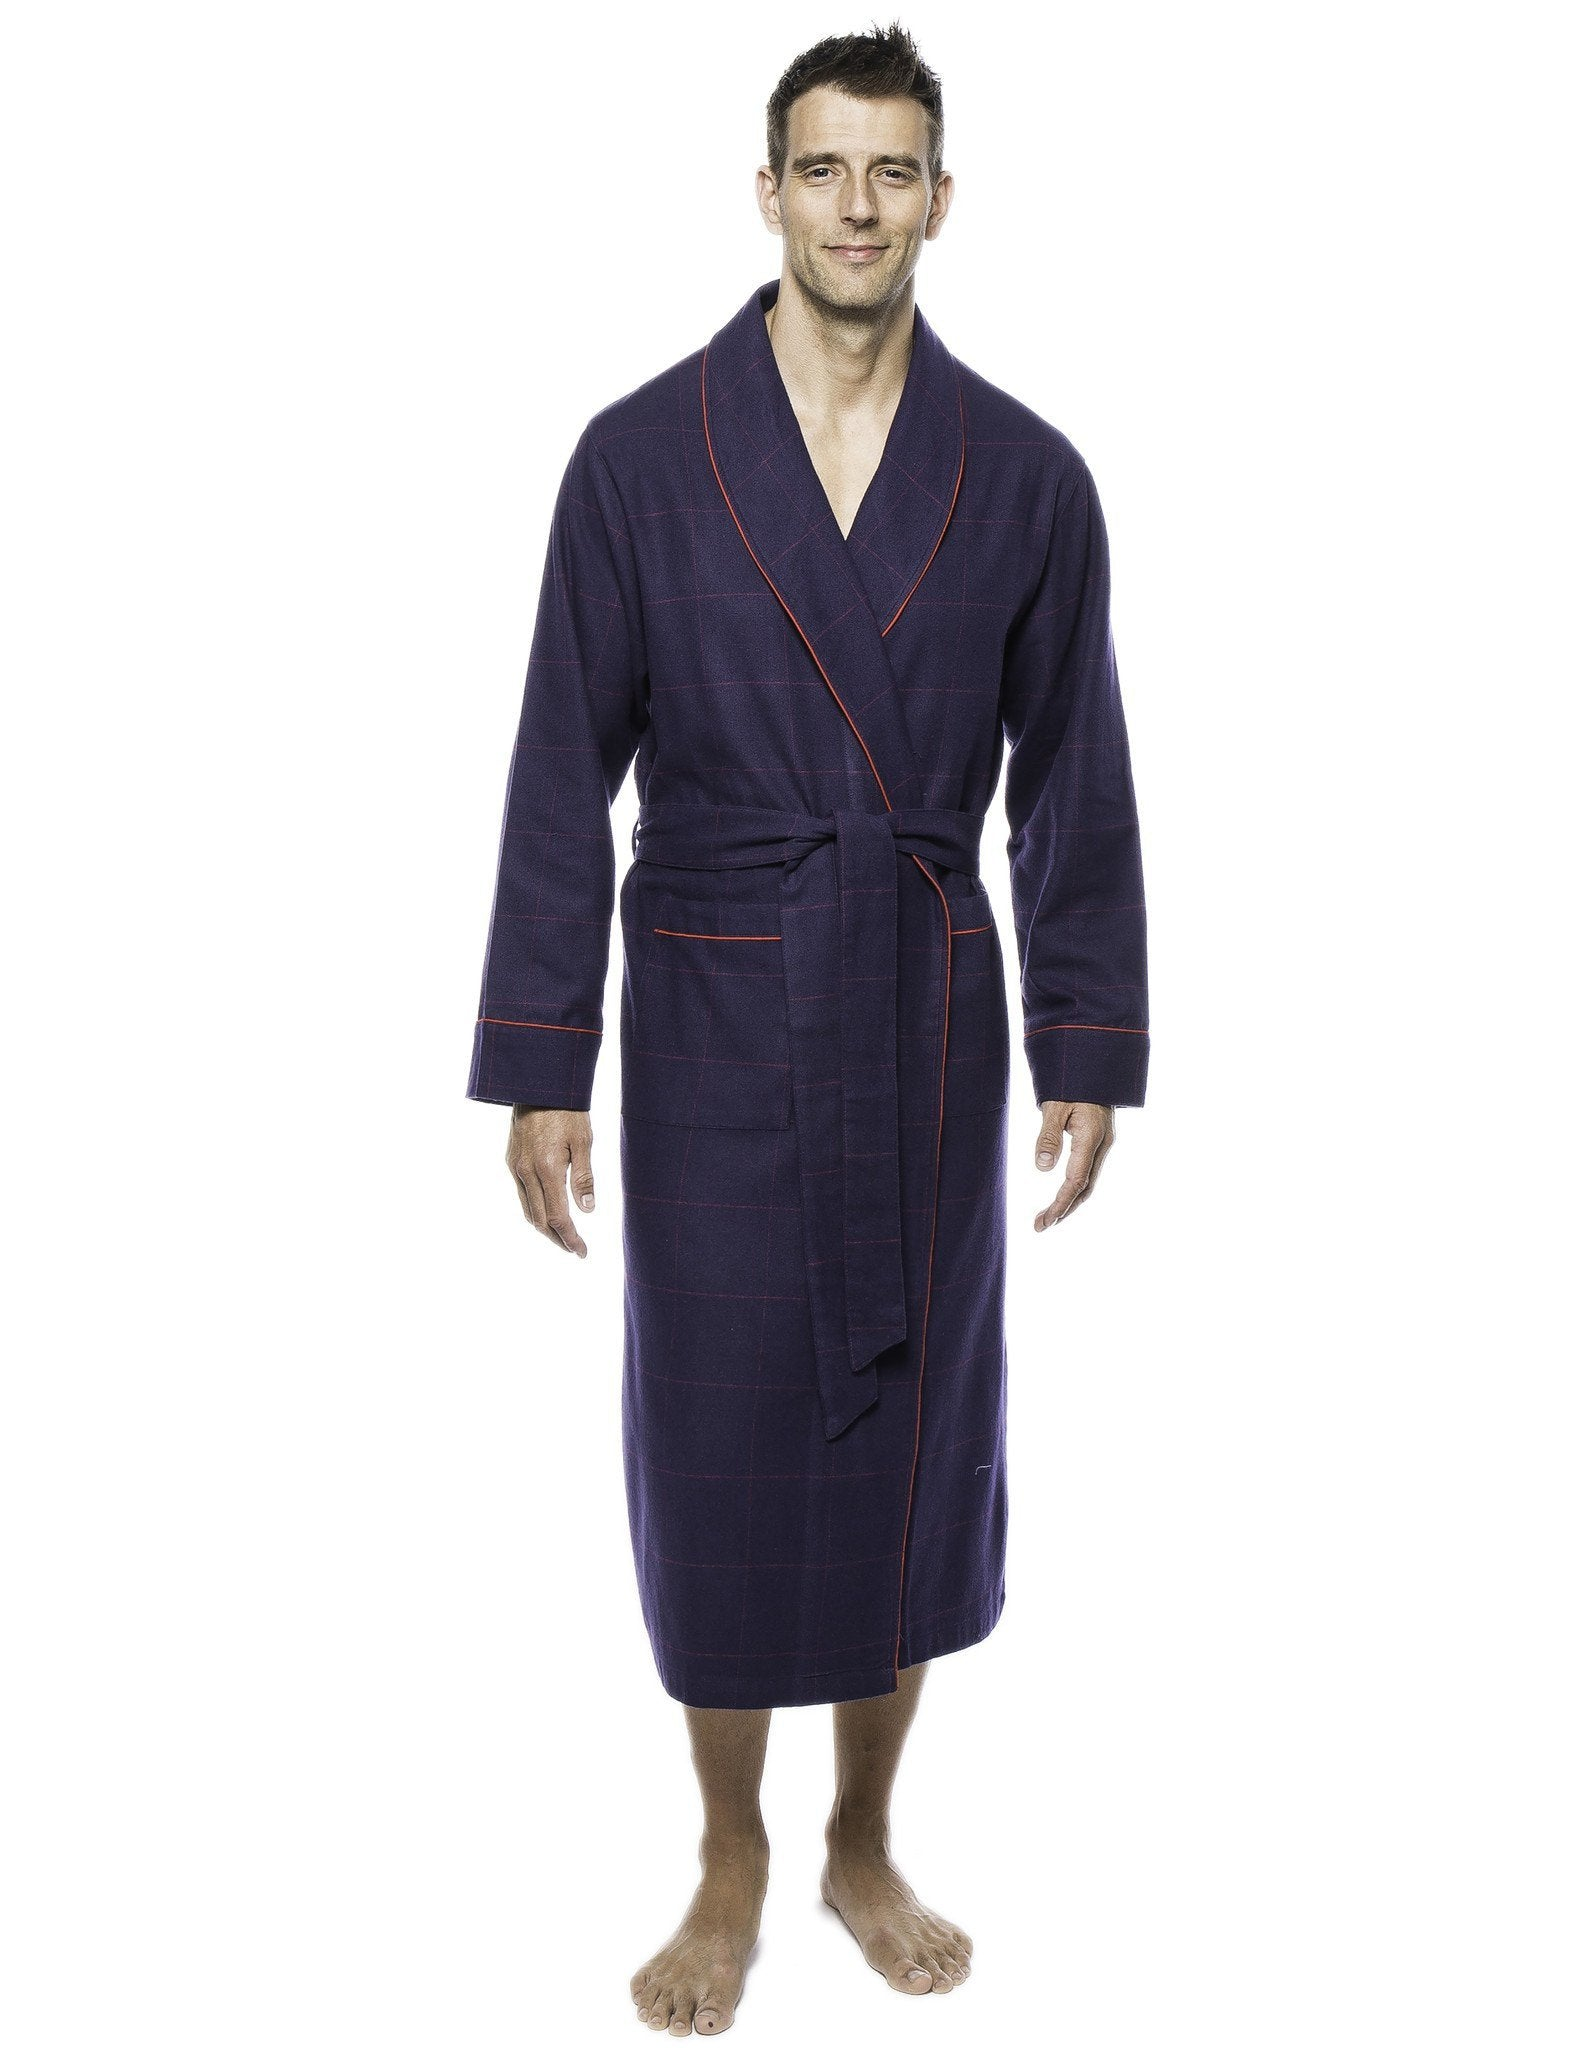 Mens Premium 100% Cotton Flannel Robe - Windowpane Checks Blue/Red